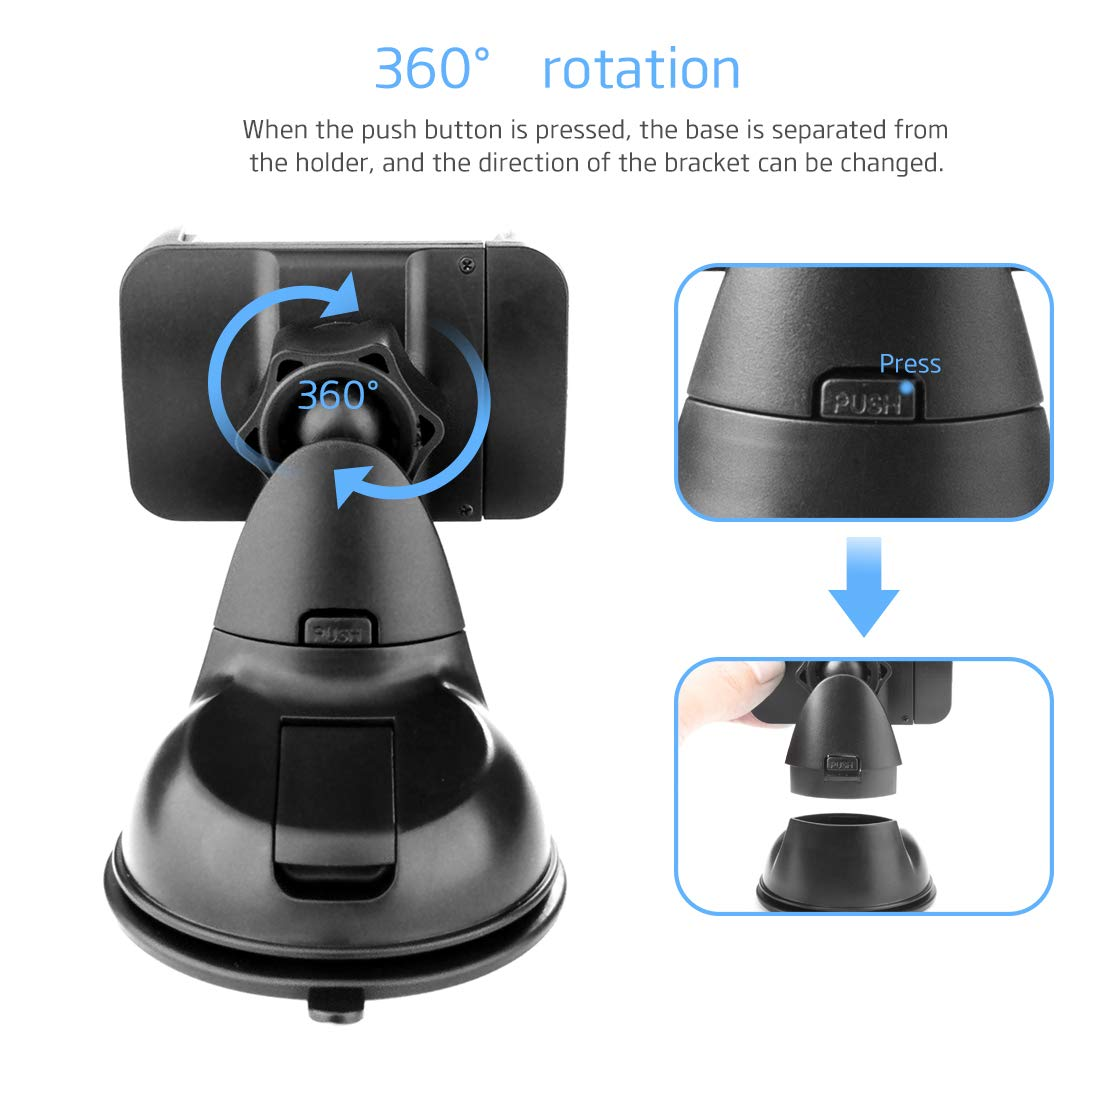 Universal Silicone Sucker Cell Phone Car Mount for Dashboard and Windshield MAXAH Phone Holder for Car S8 S7 Edge S6 S5 4352722322 7 7 Plus 6s Plus 6s SE Samsung Galaxy S9 S9 Compatible with iPhone X 8 8